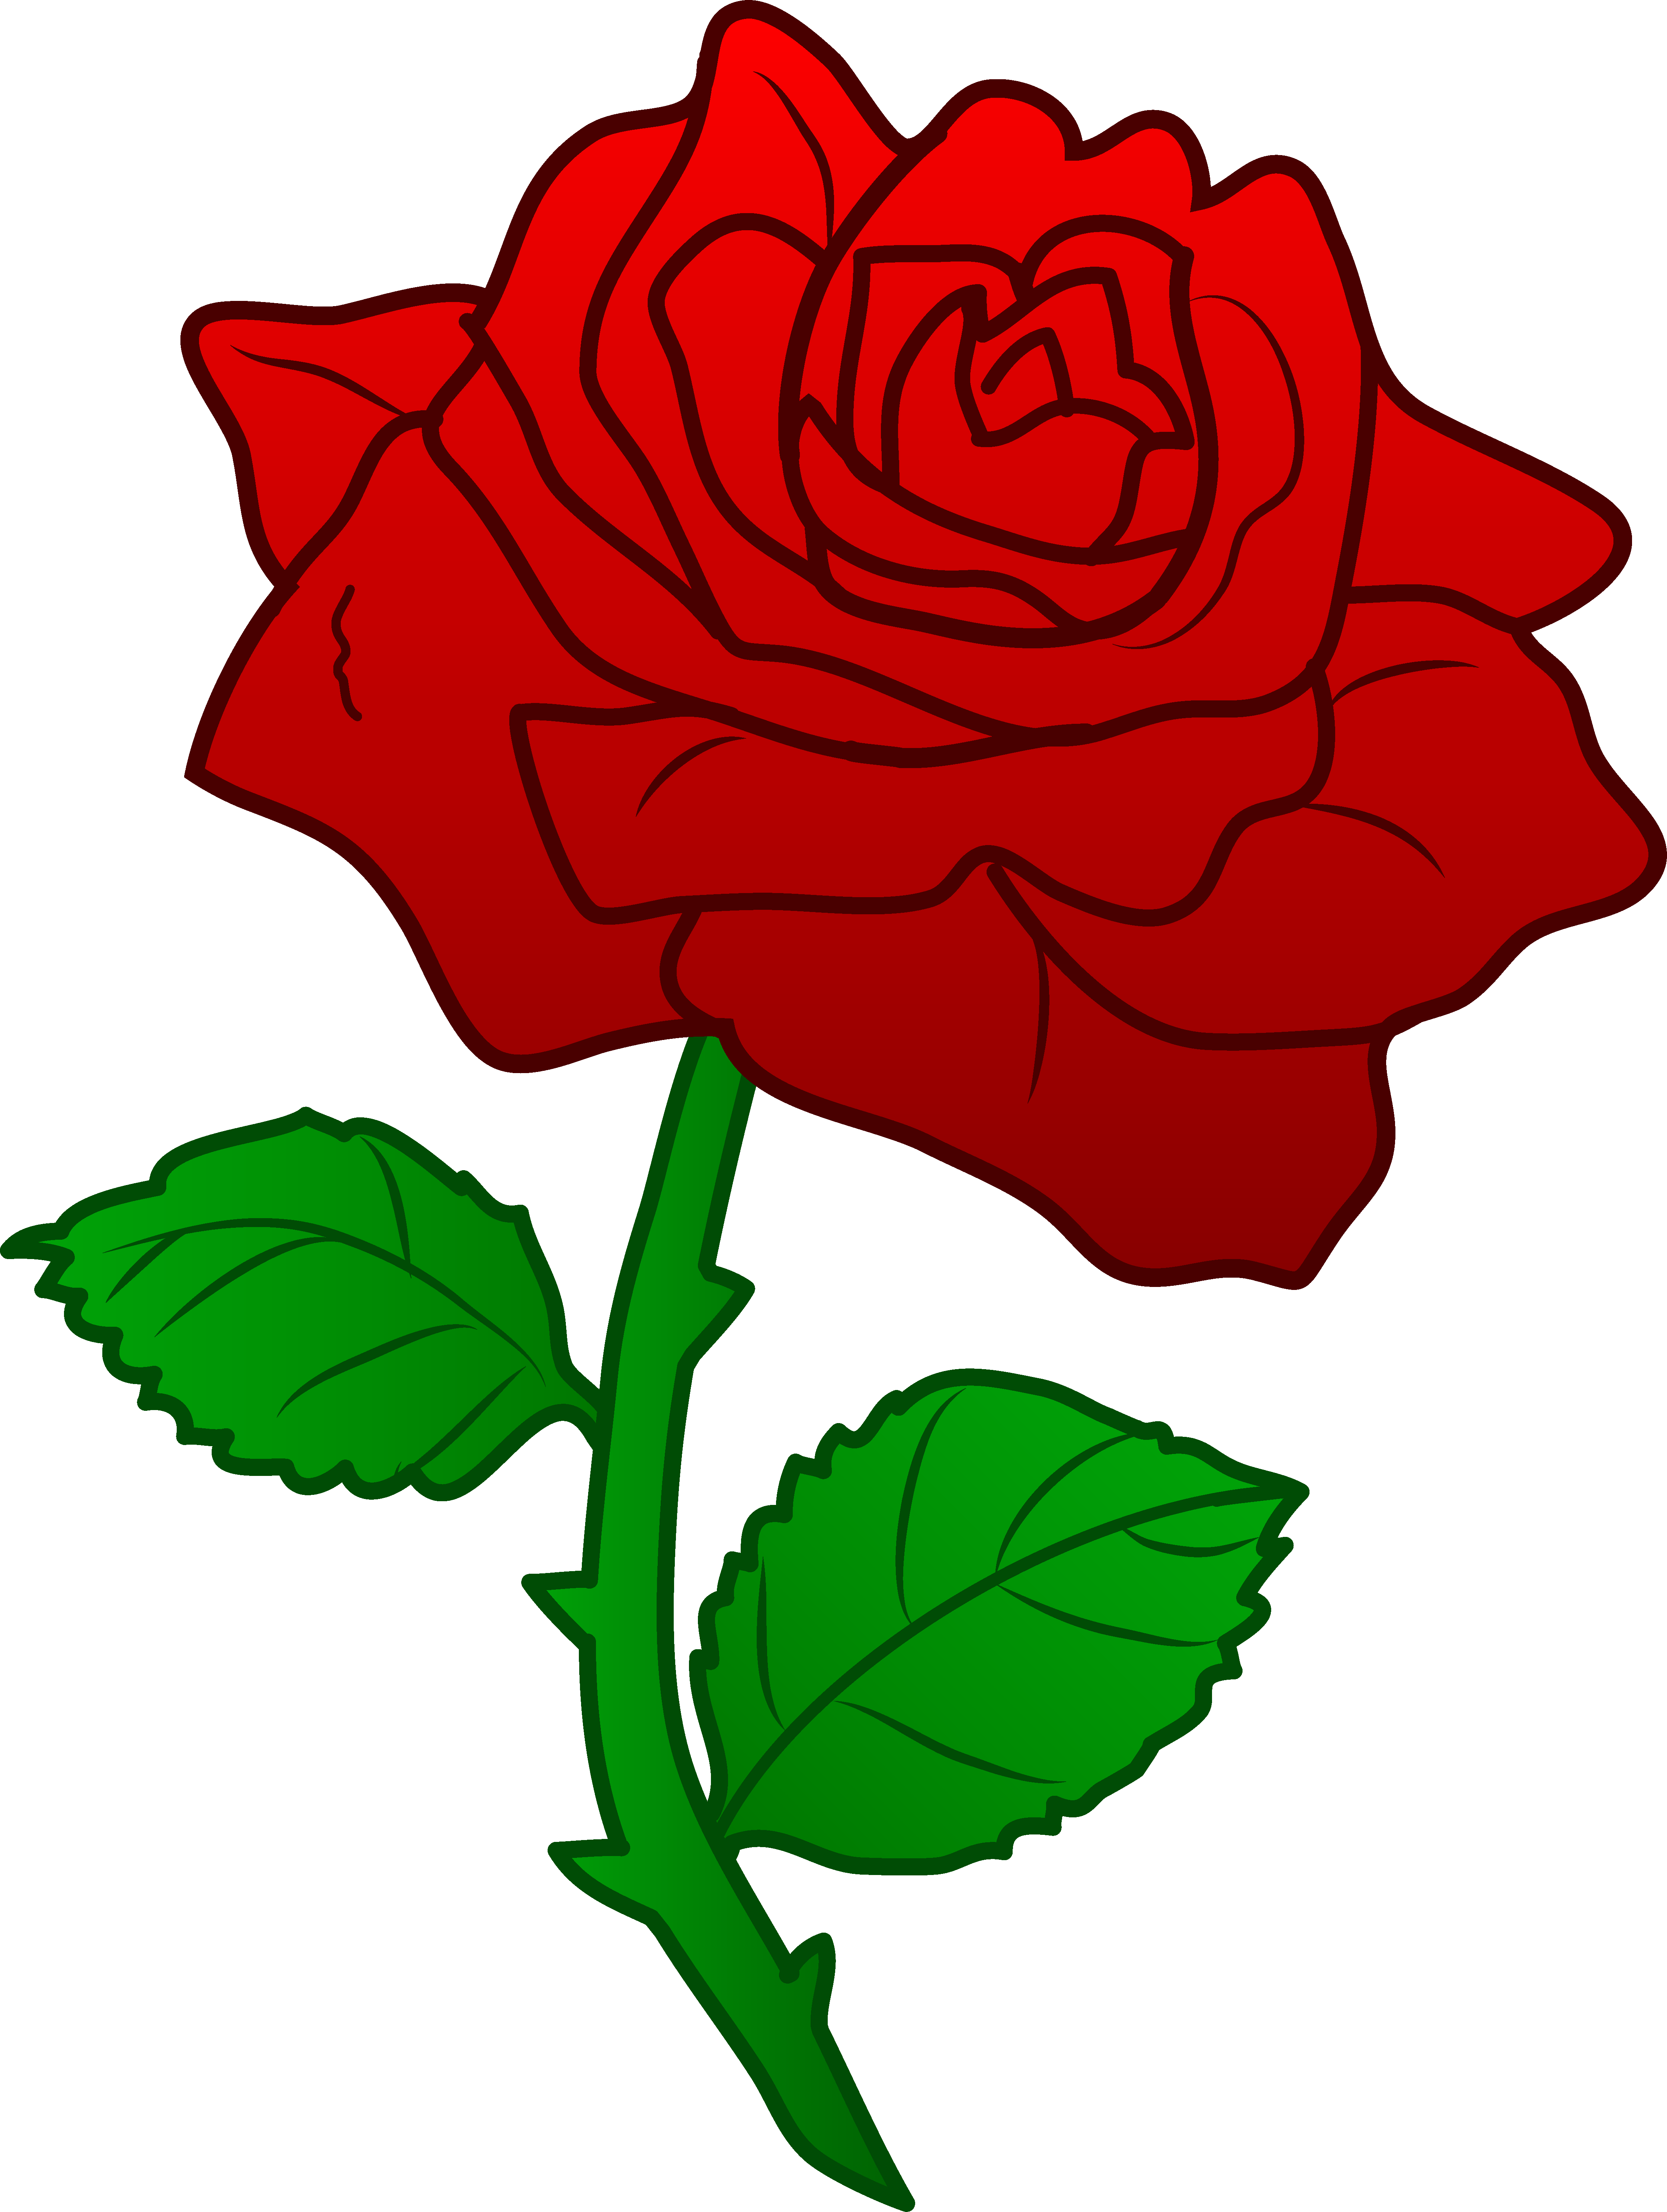 clipart rose-clipart rose-4